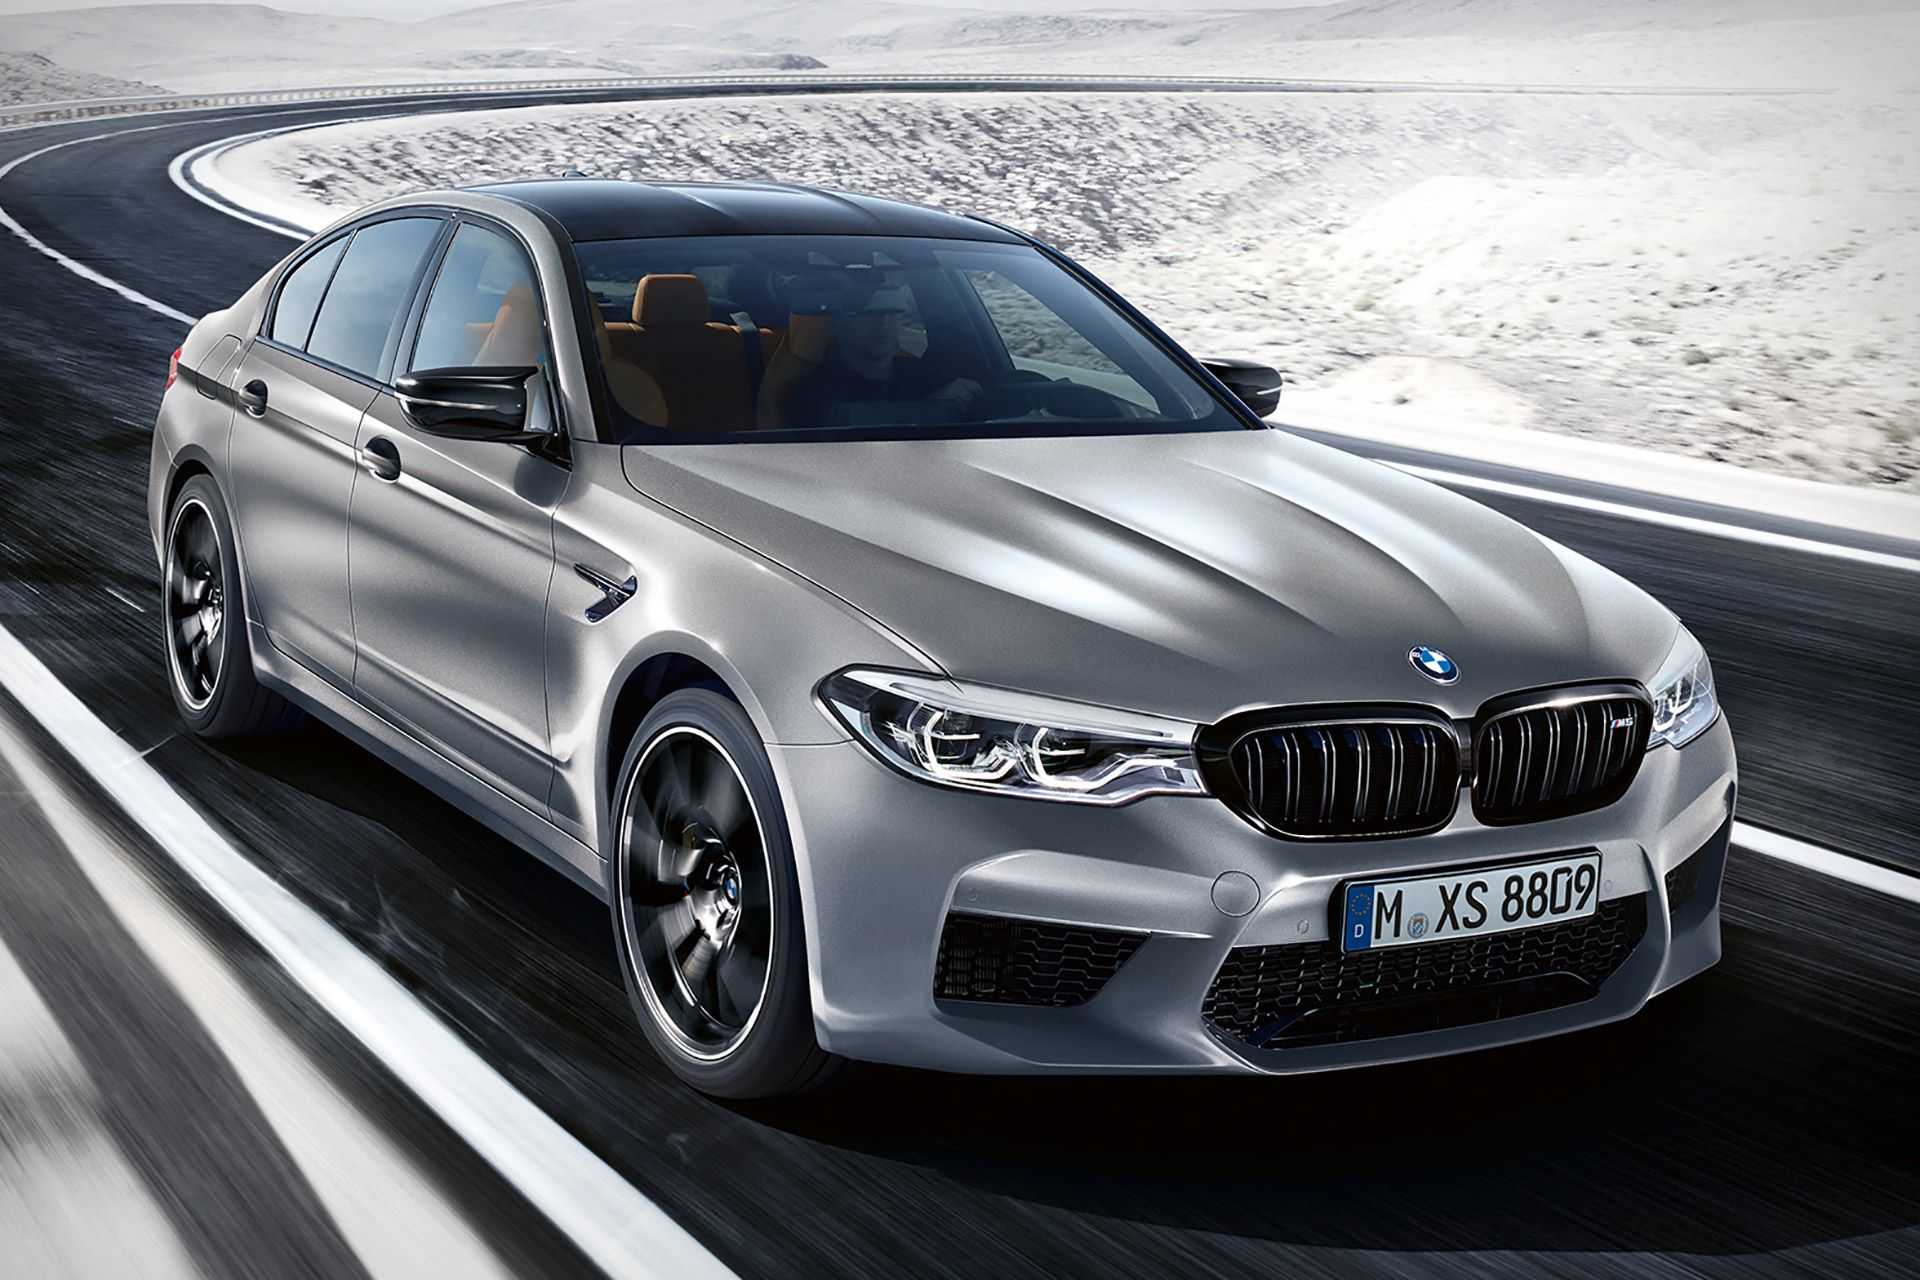 2019 Bmw M5 Competition Sedan Bmw Bmw M5